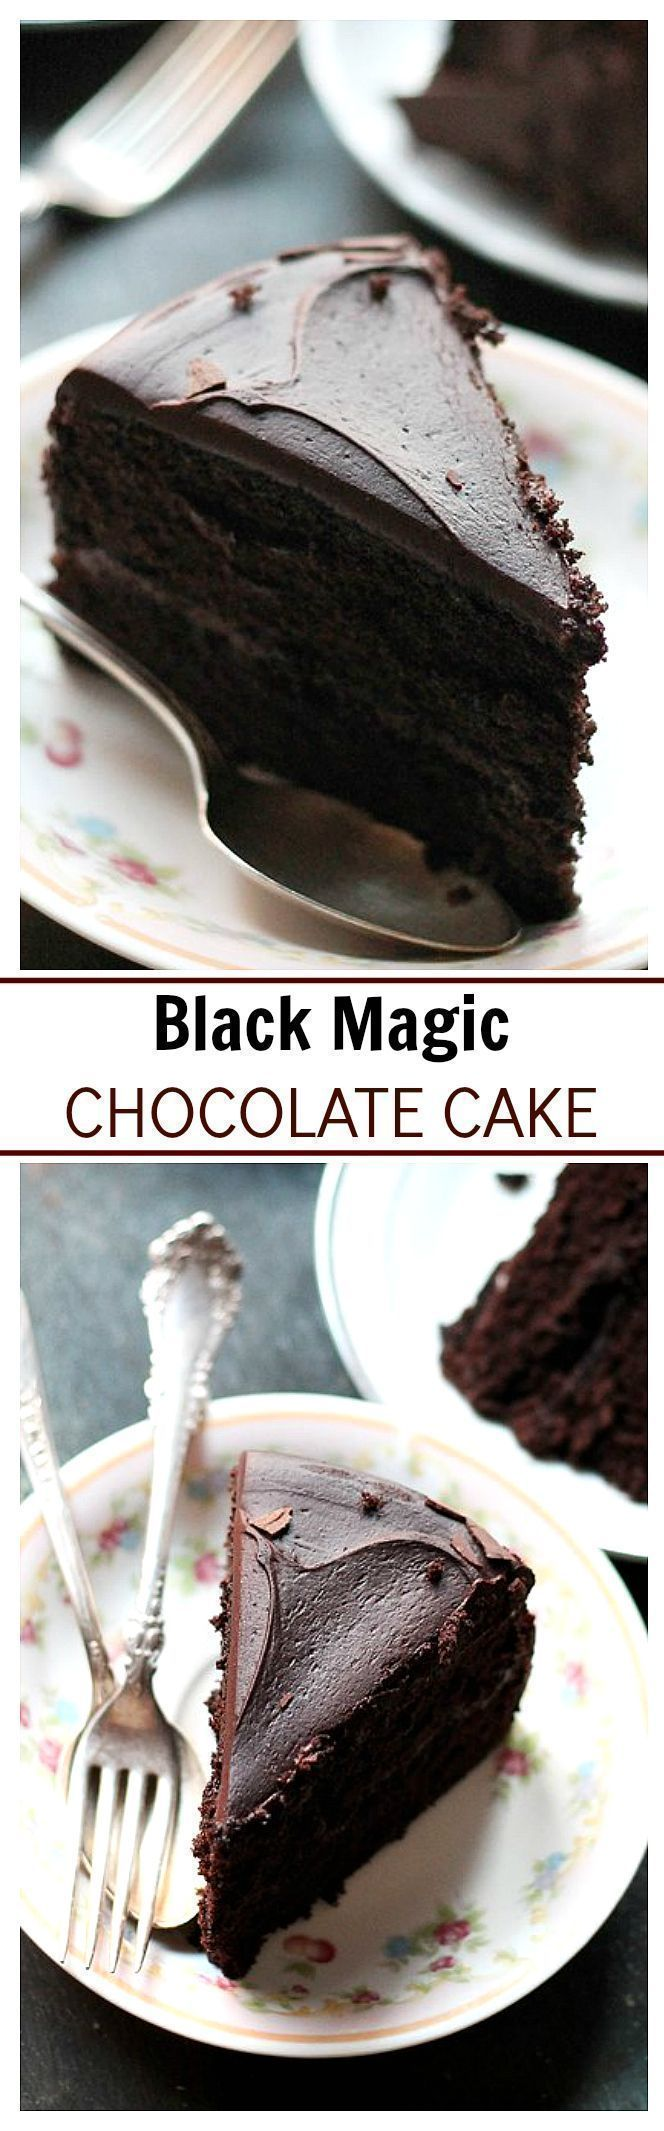 Best 25+ Black magic cake ideas only on Pinterest | Black magic ...